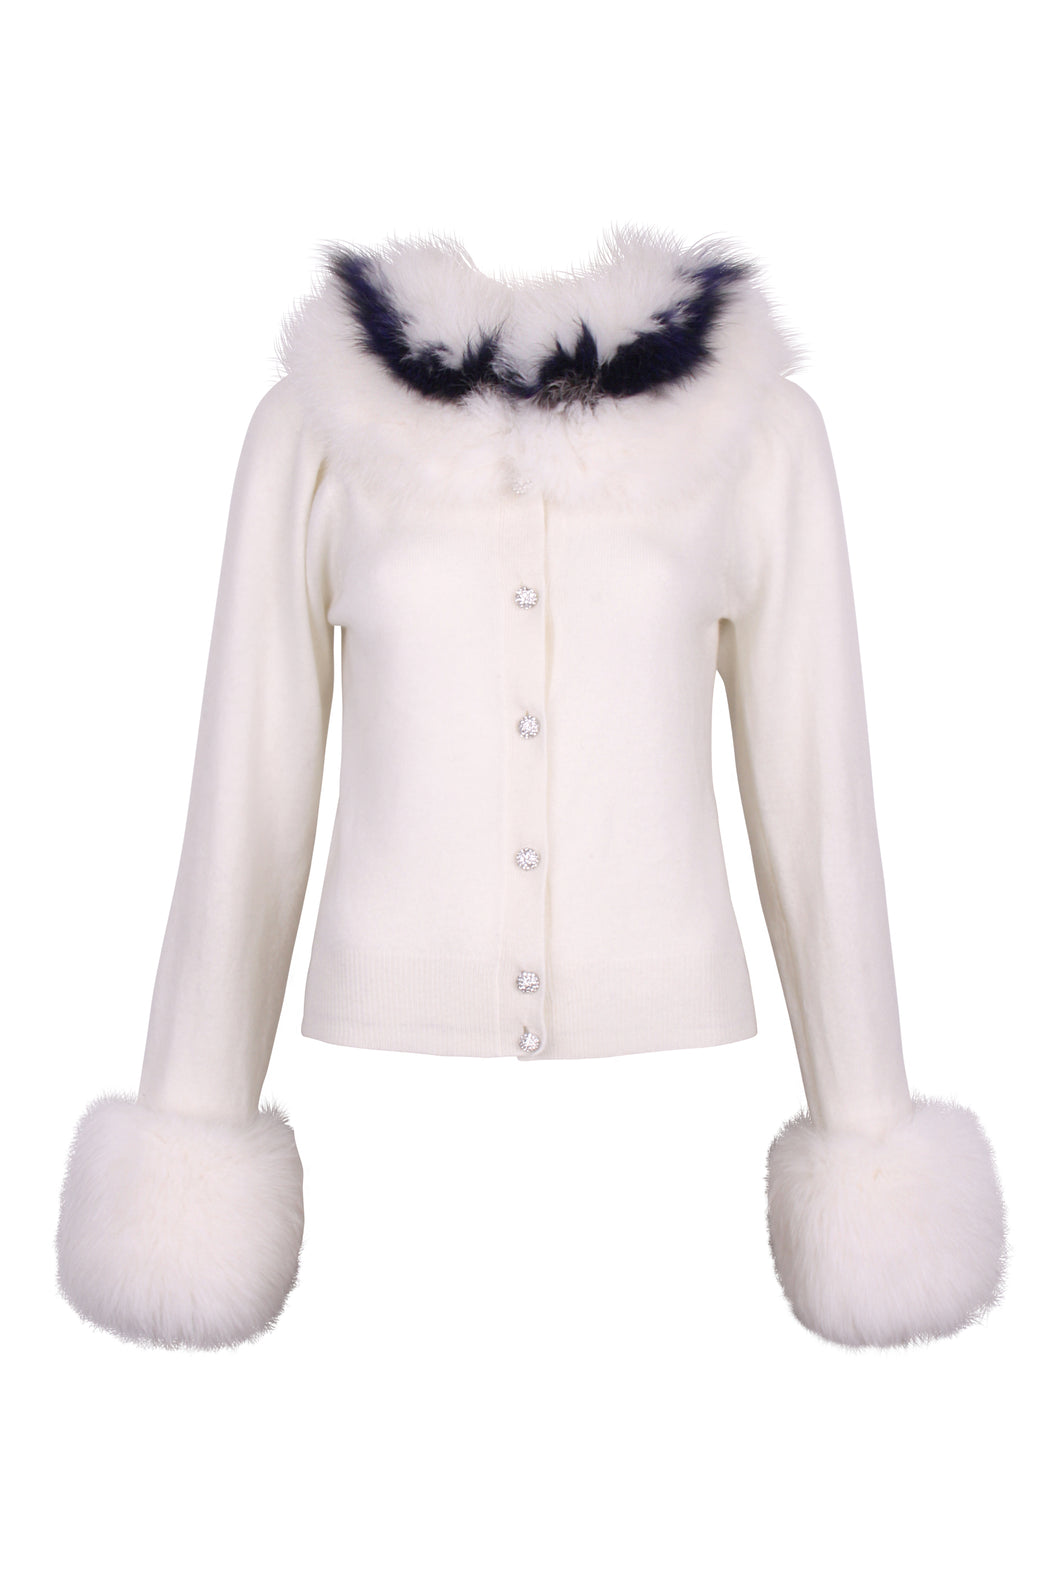 Balloon Sleeves White Buttoned Cardigan